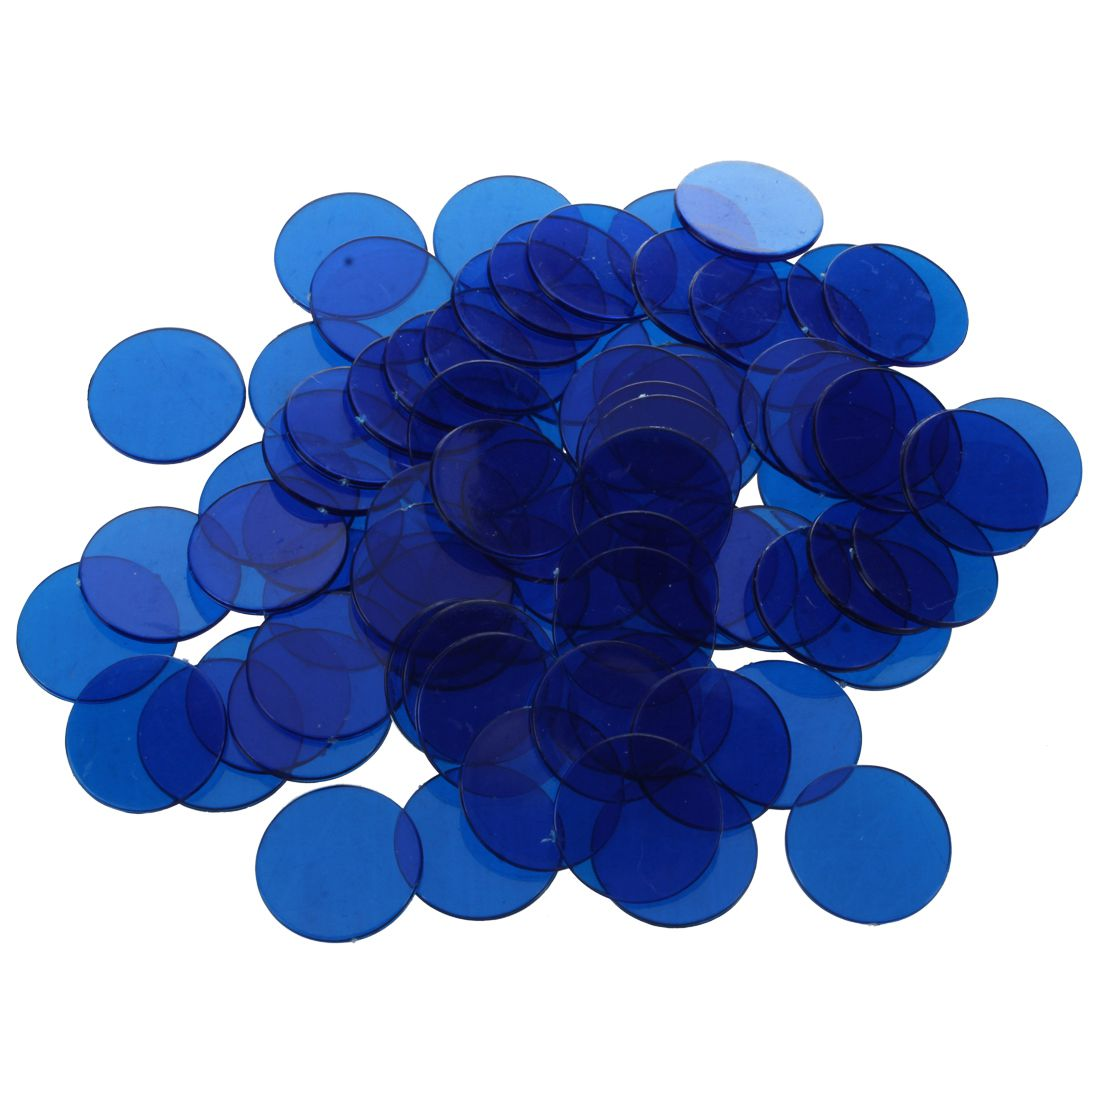 New Approx.100Pcs 3/4 Inch Plastic Bingo Chips, Translucent Design, for Classroom and Carnival Bingo Games Blue